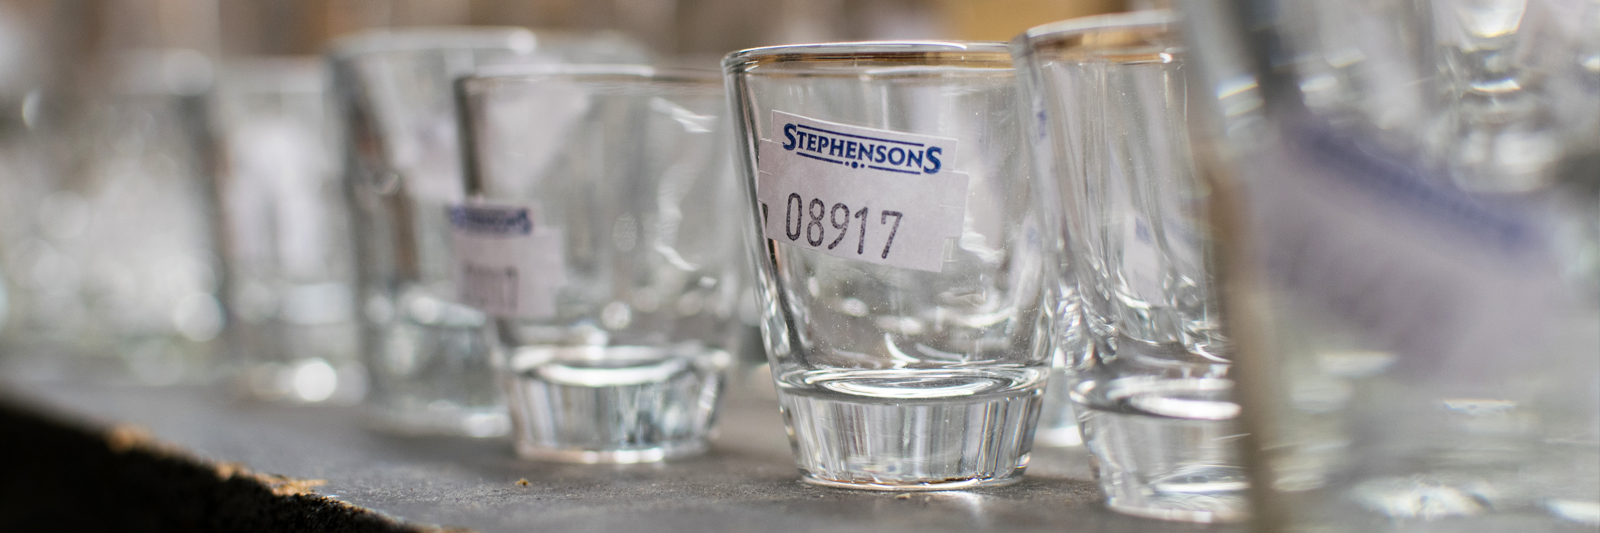 Tableware, Catering Equipment and Disposables from Stephensons Catering Suppliers